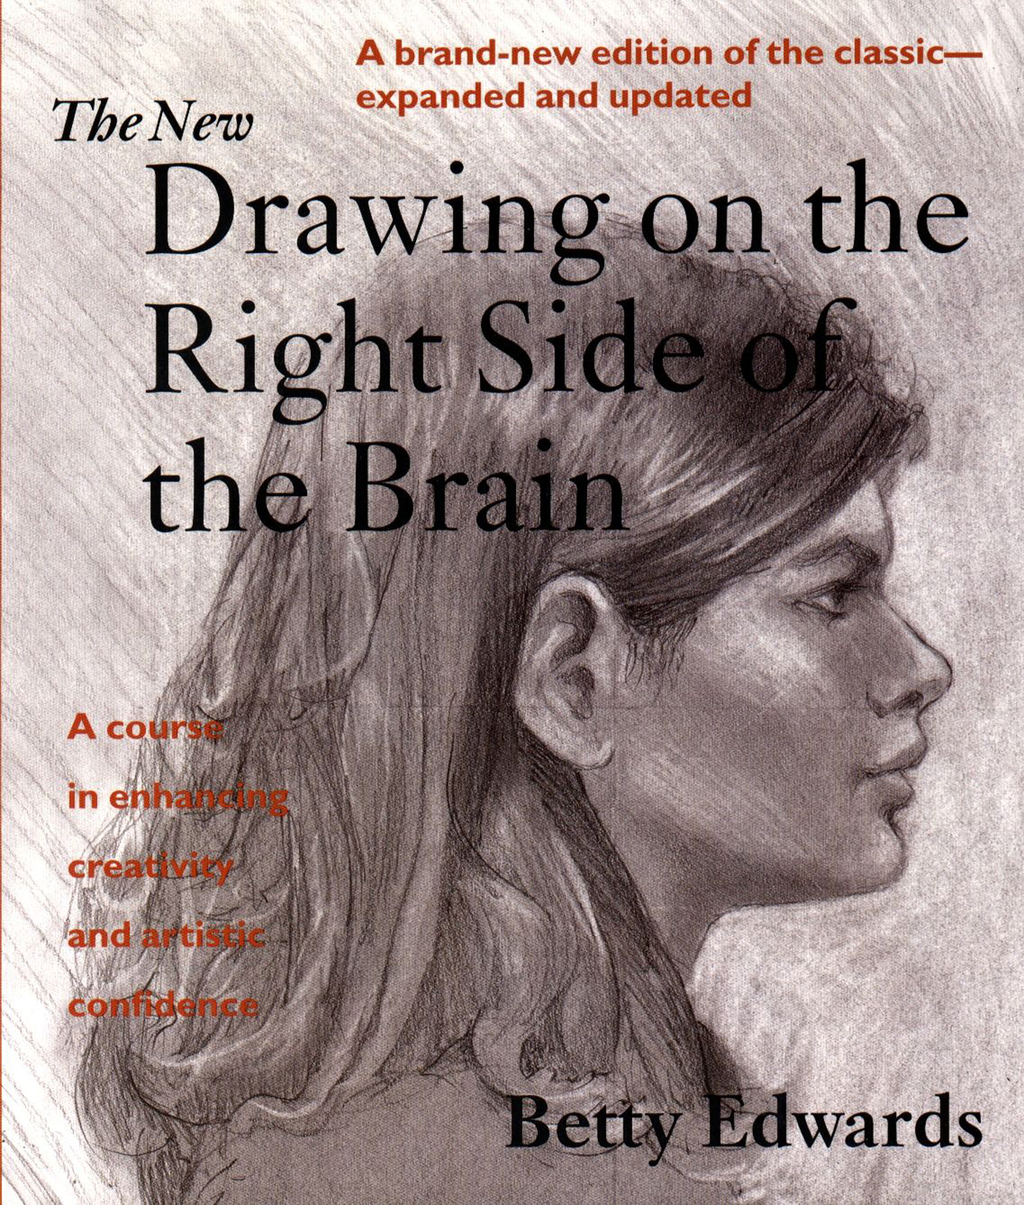 The New Drawing on the Right Side of the Brain: The 1999, 3rd Edition By: Betty Edwards